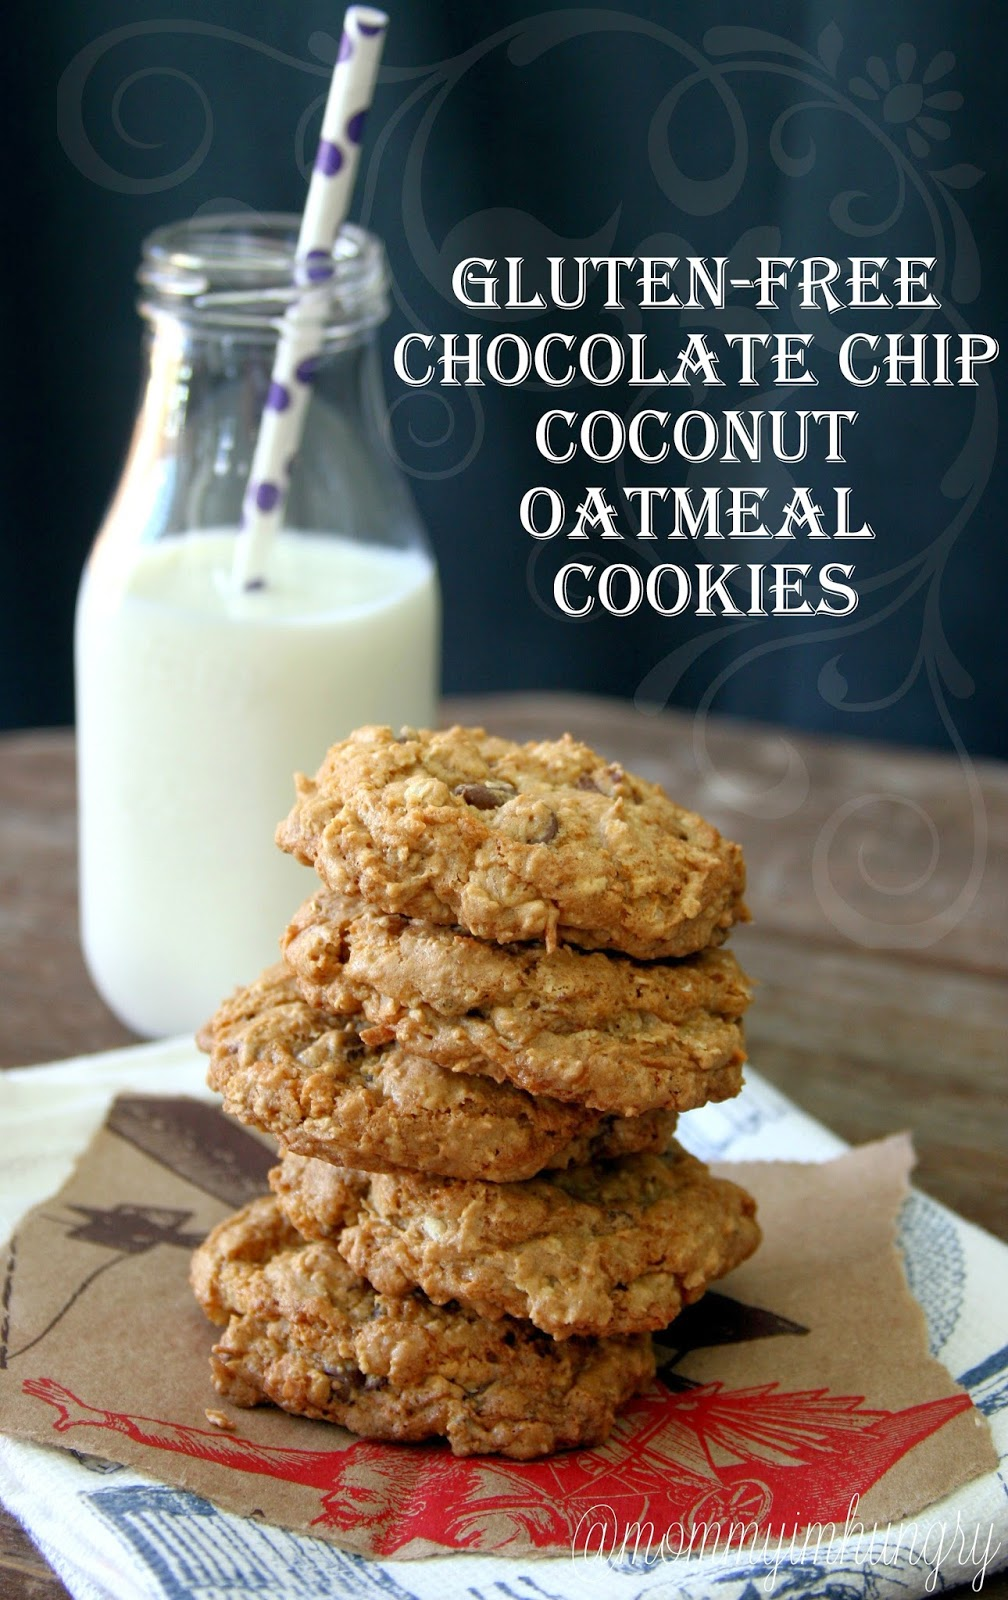 MIH Recipe Blog: Gluten-Free Chocolate Chip Coconut Oatmeal Cookies